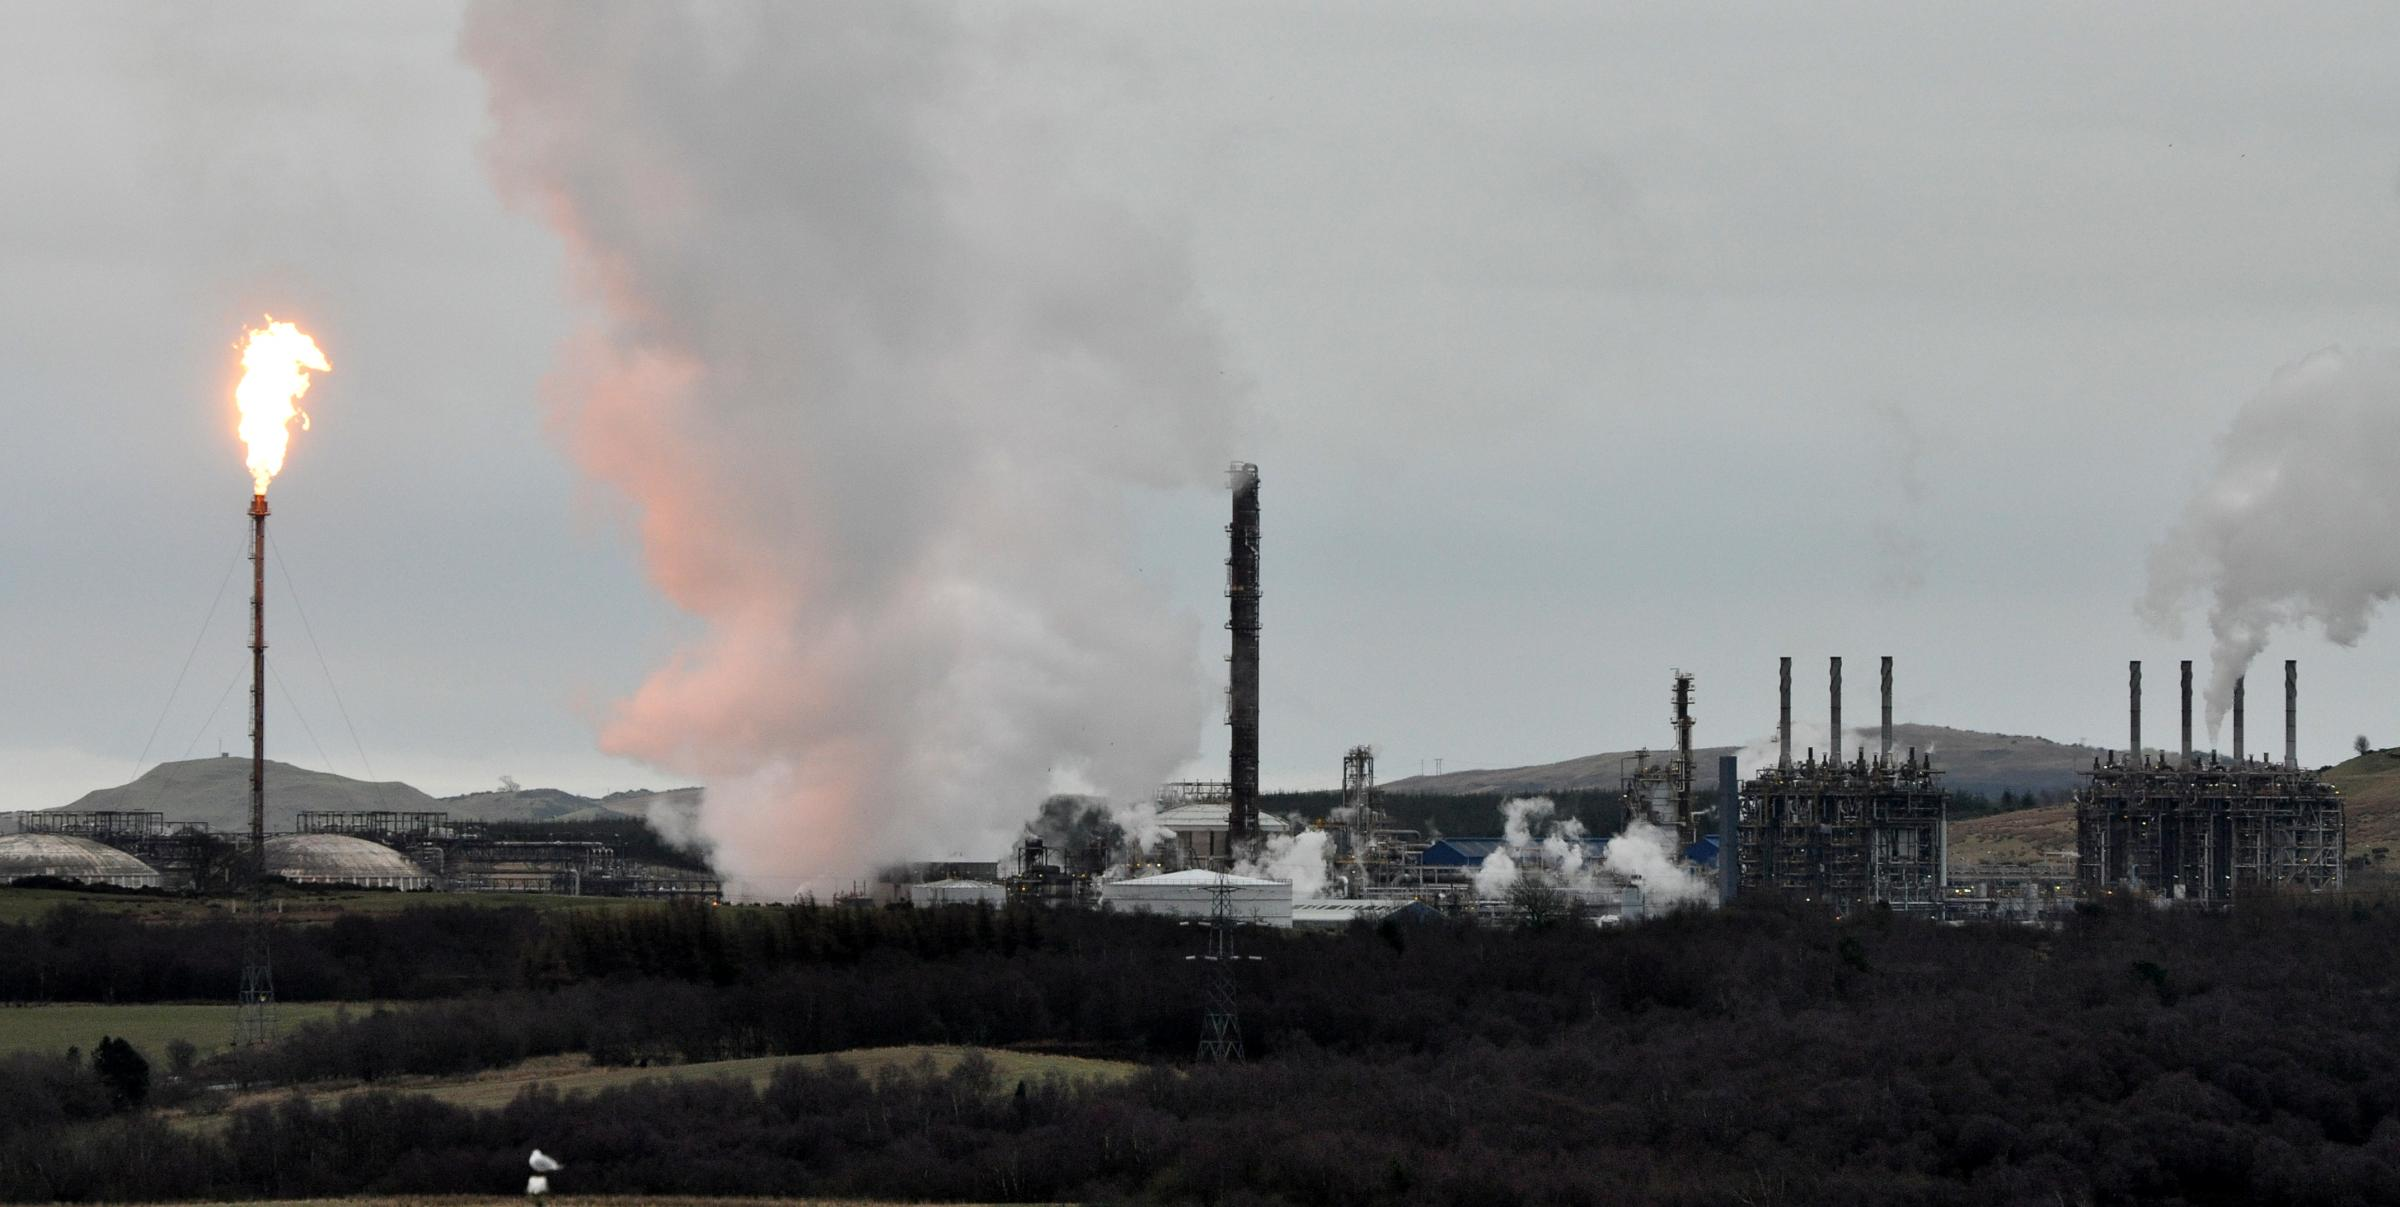 Mossmorran workers walk out over safety fears after 'intense flaring'